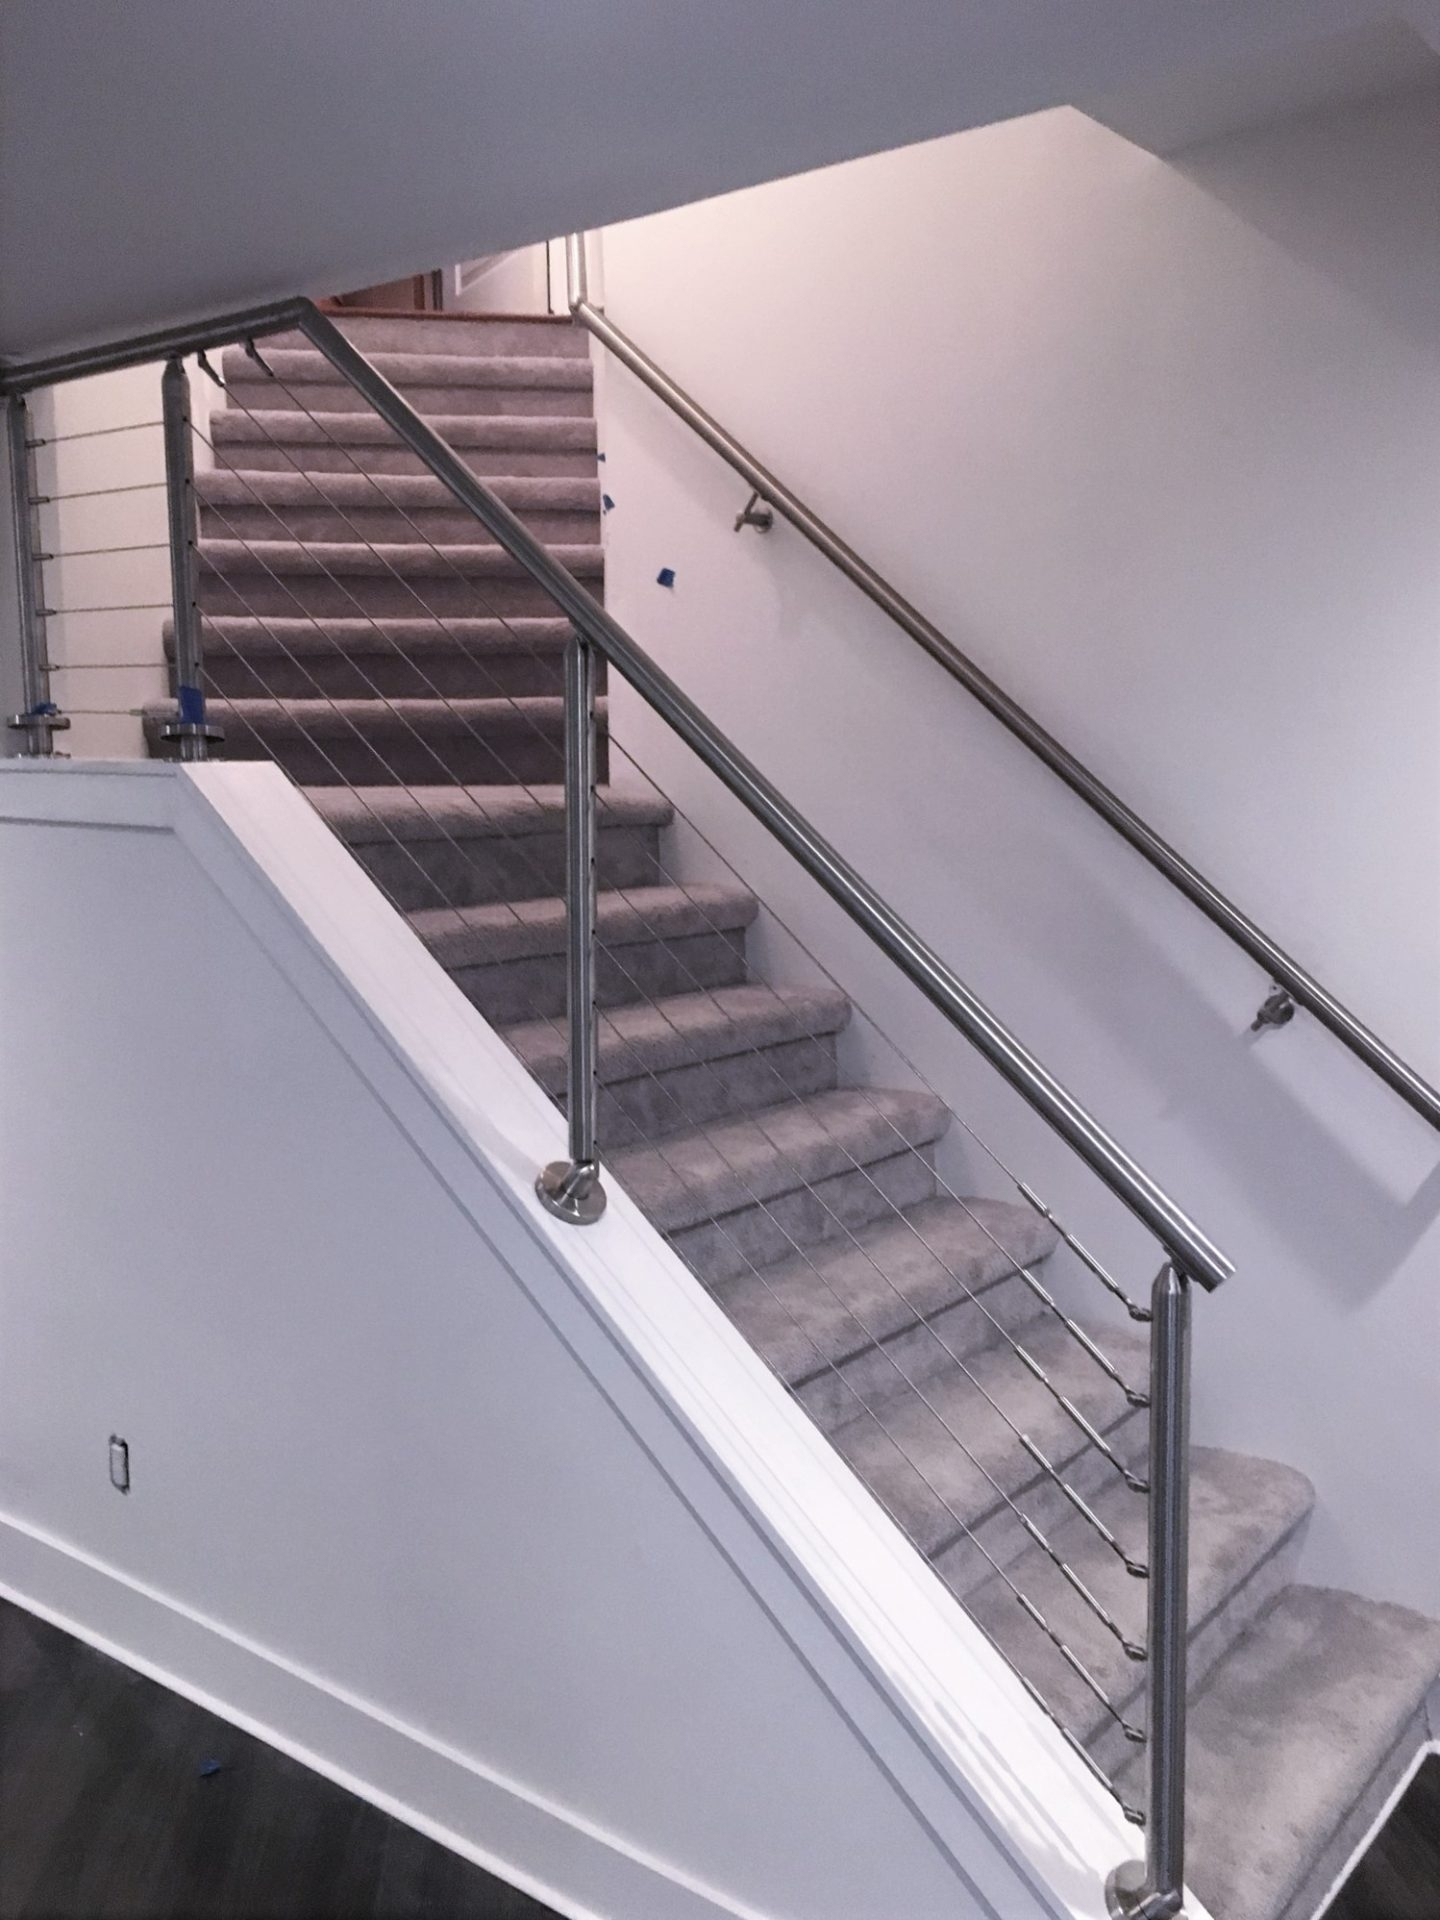 Stainless Steel Cable Railing Kit Great Lakes Metal Fabrication   Steel Railing For Steps   Balustrade   Simple   Fabrication   Carbon Steel   Wooden